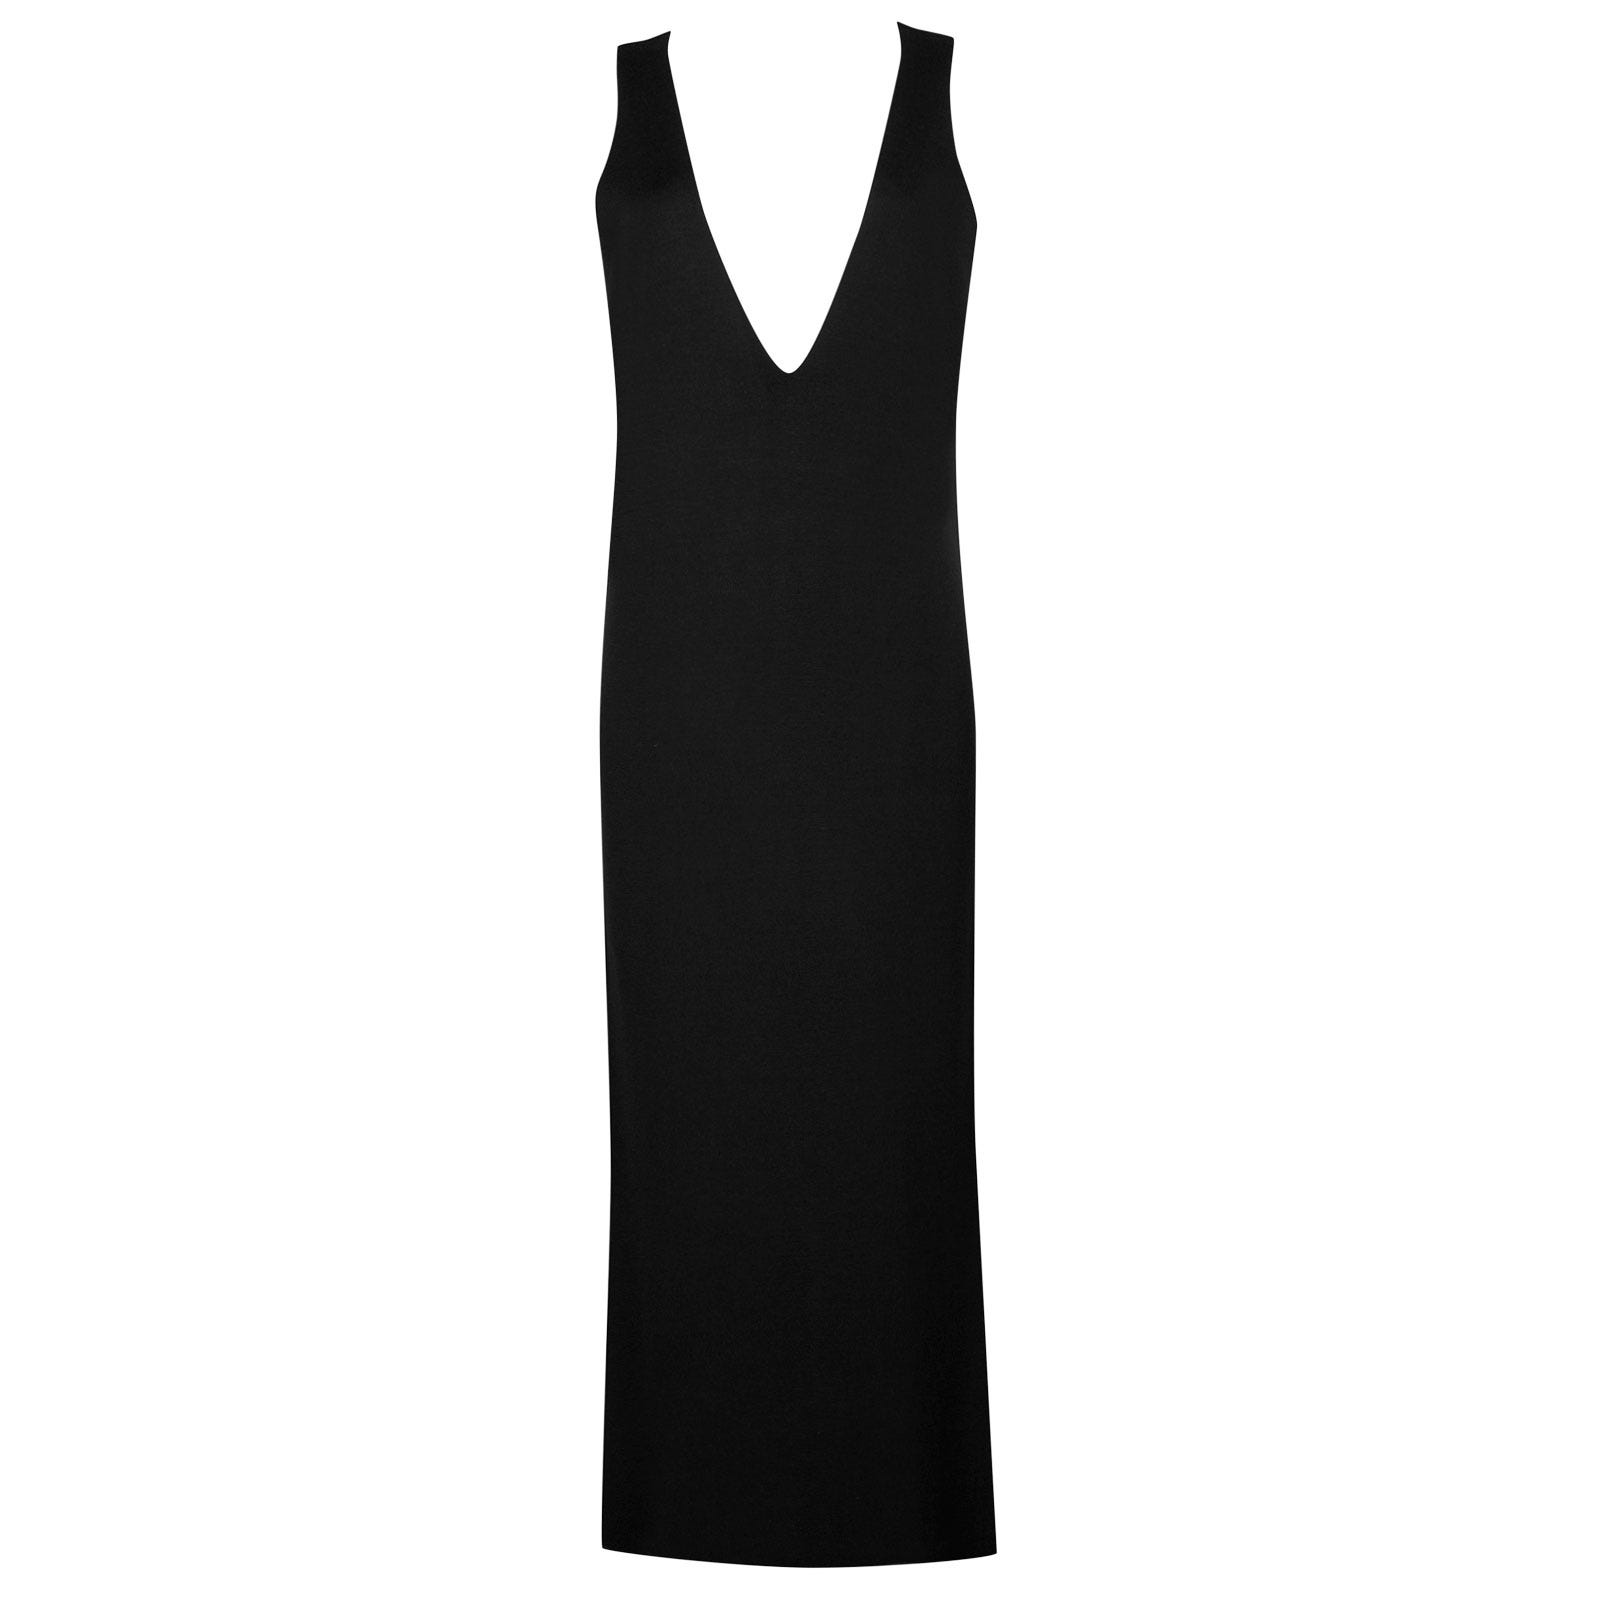 John Smedley odell Merino Wool Dress in Black-S